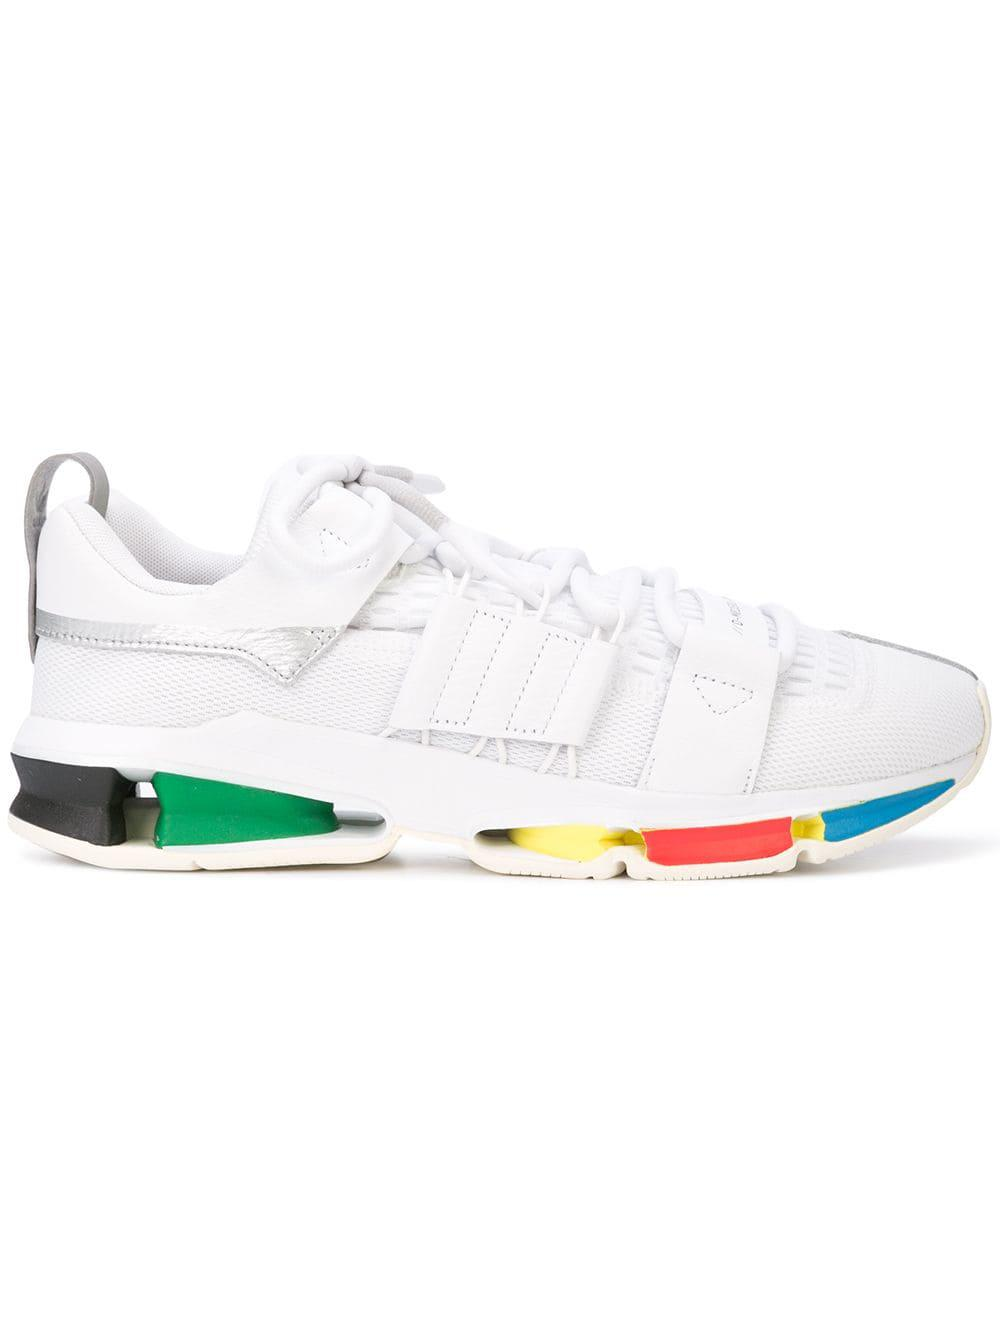 newest 4d760 39bc1 Lyst - adidas Twinstrike Adv Oyster Holdings Sneakers in Whi